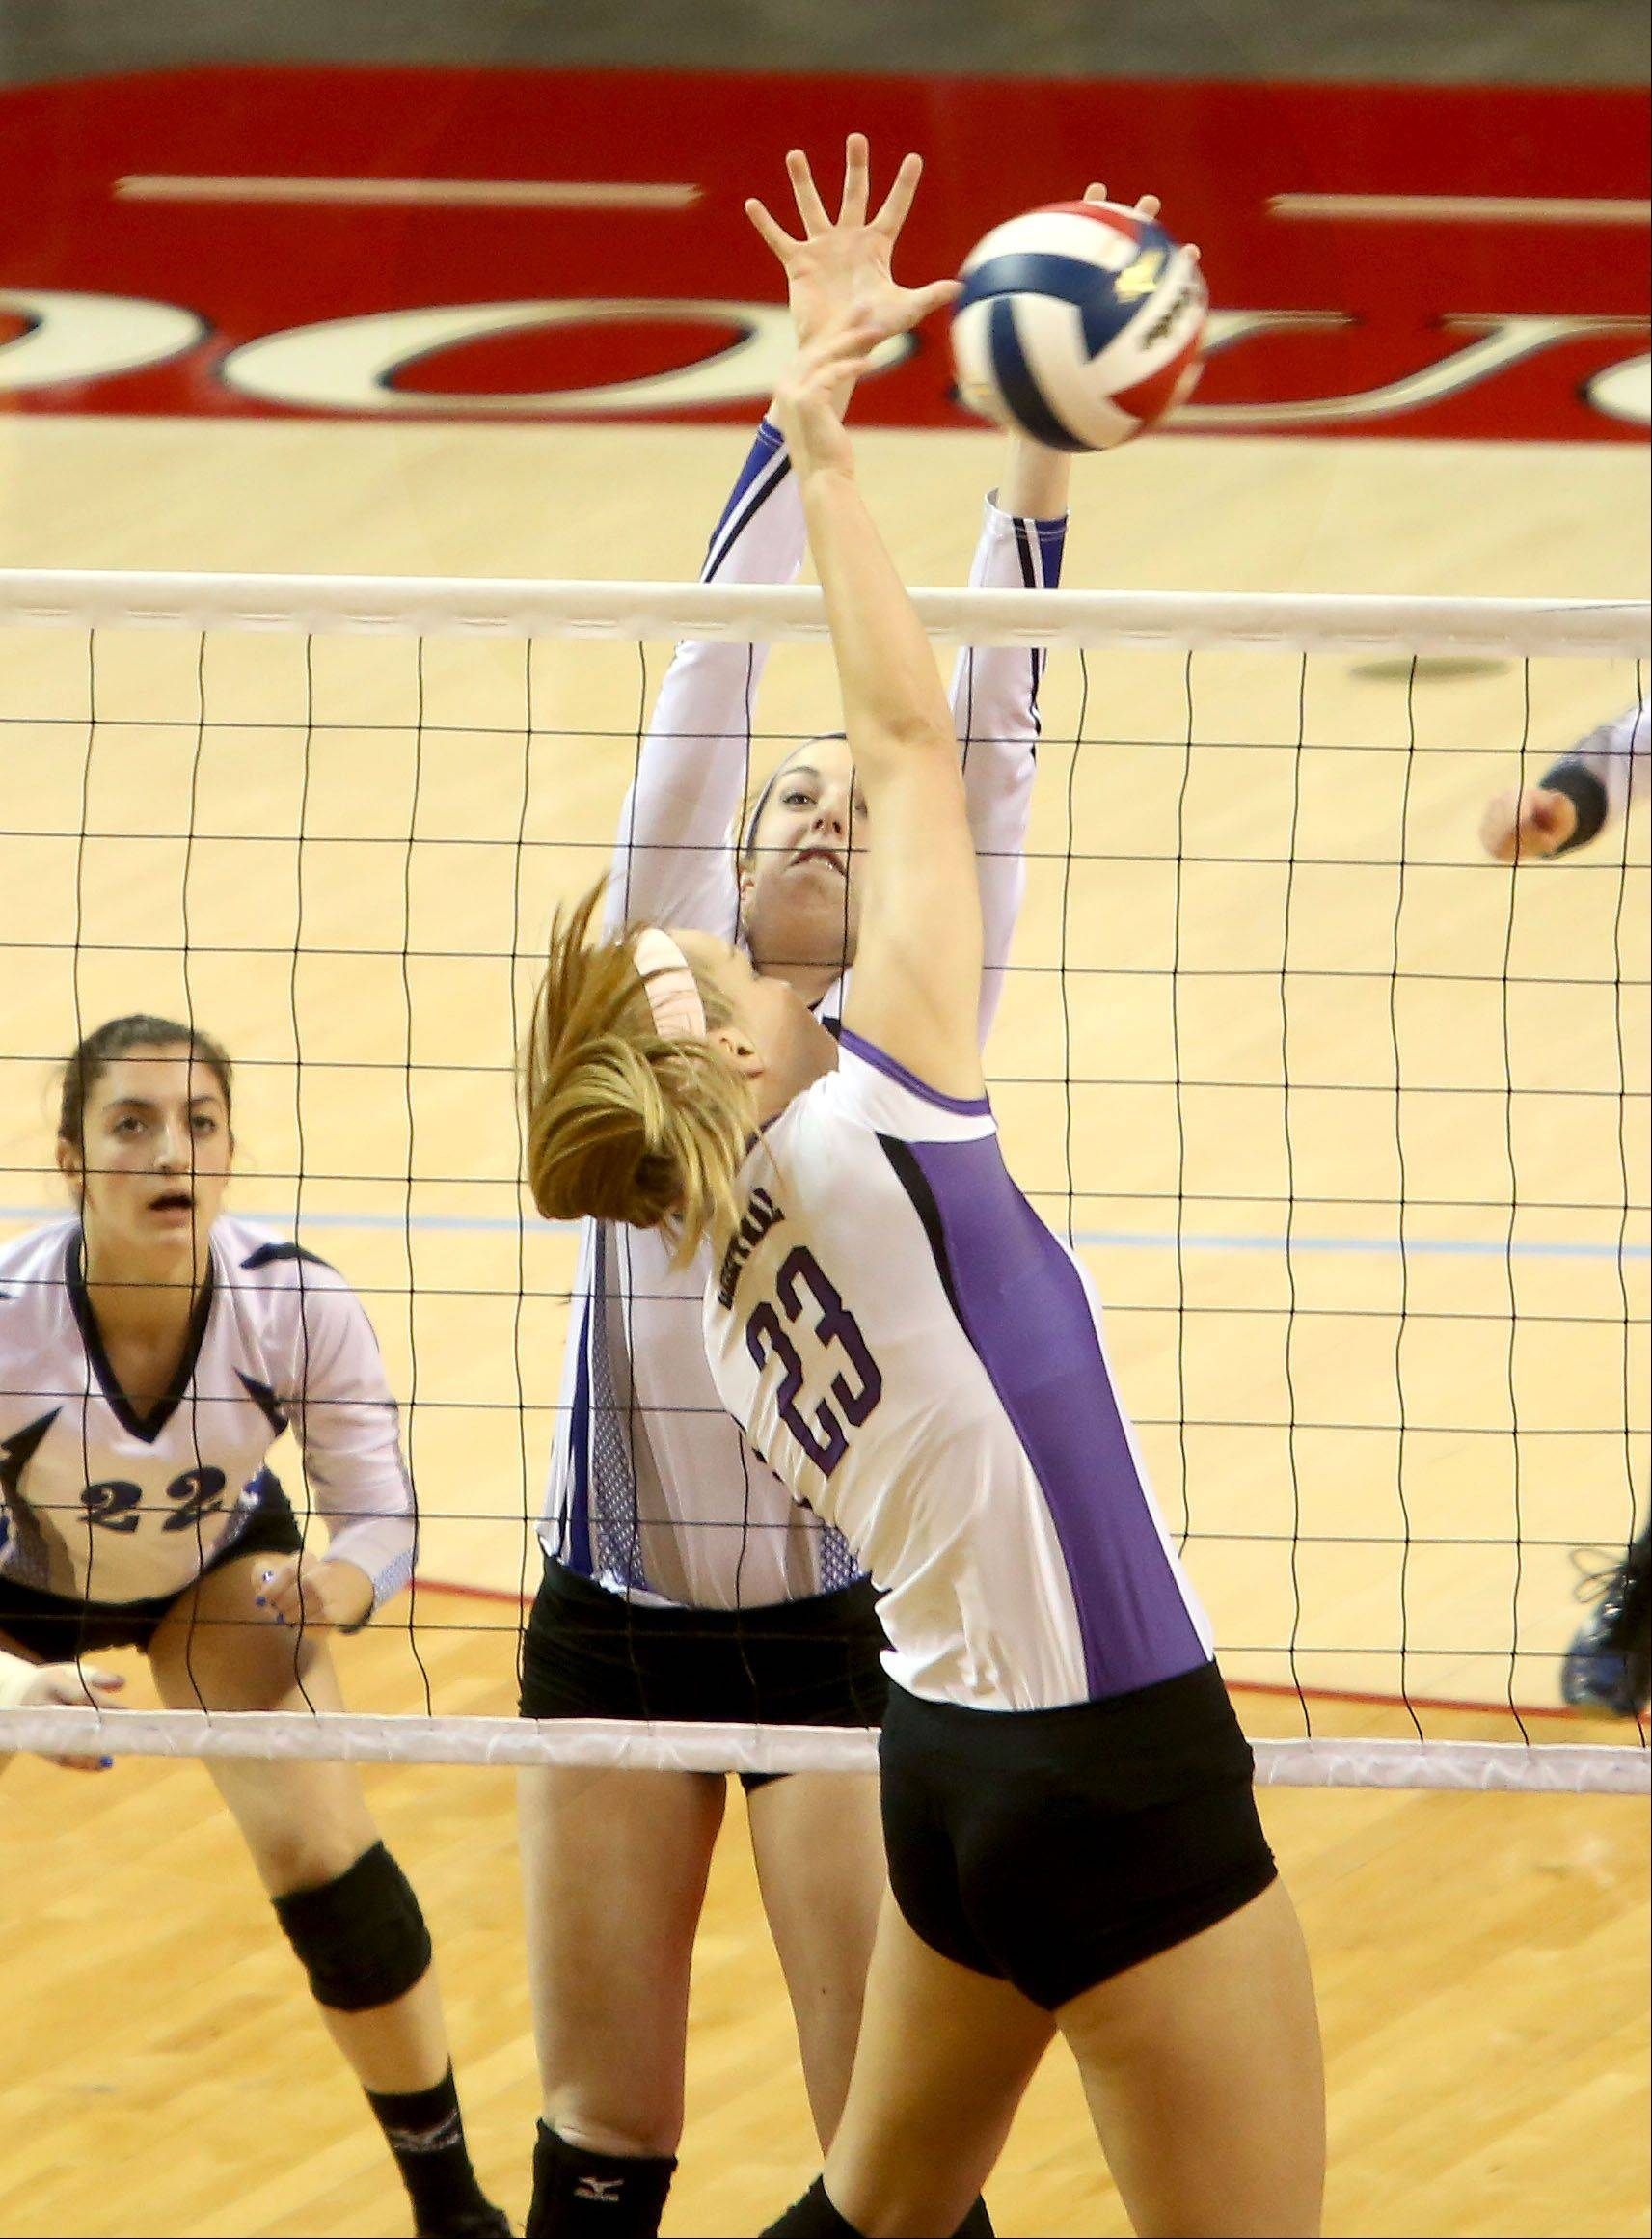 Laney Malloy of St. Francis goes up to block a shot from Madison Timmermann of Breese Central.